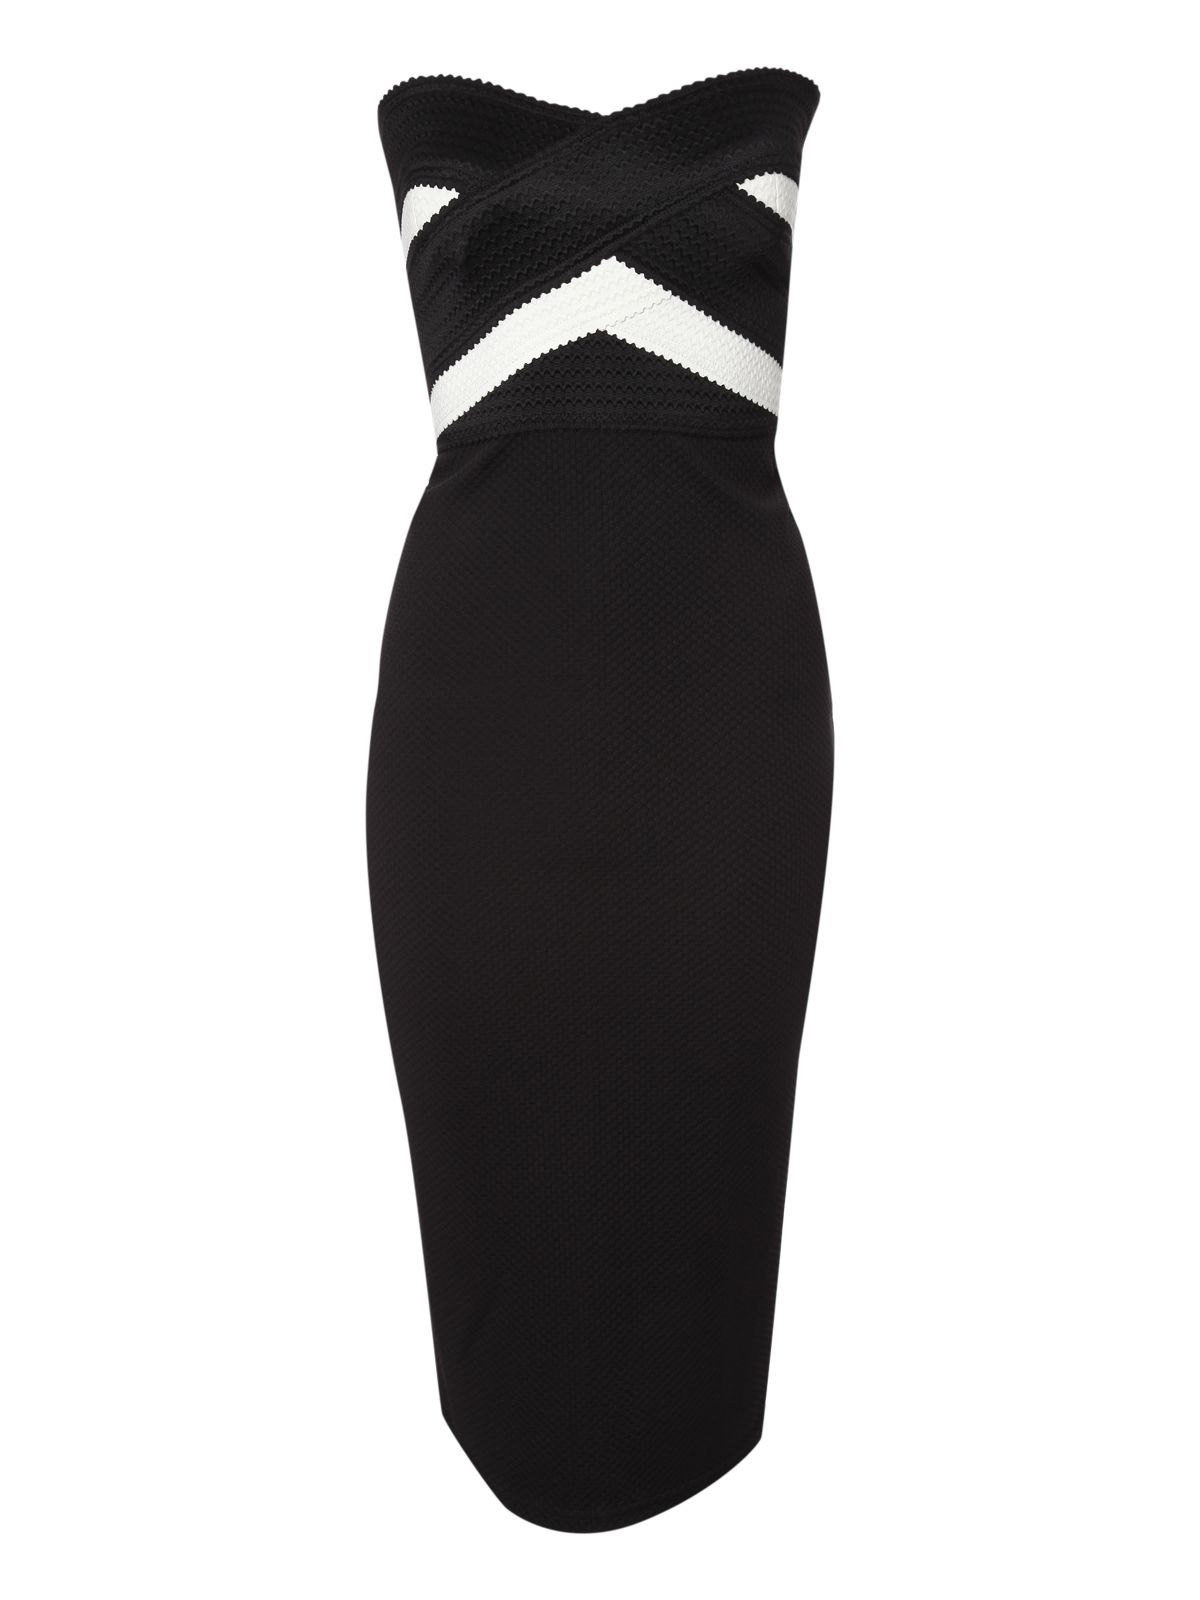 Monochrome Bandage Bandeau Dress